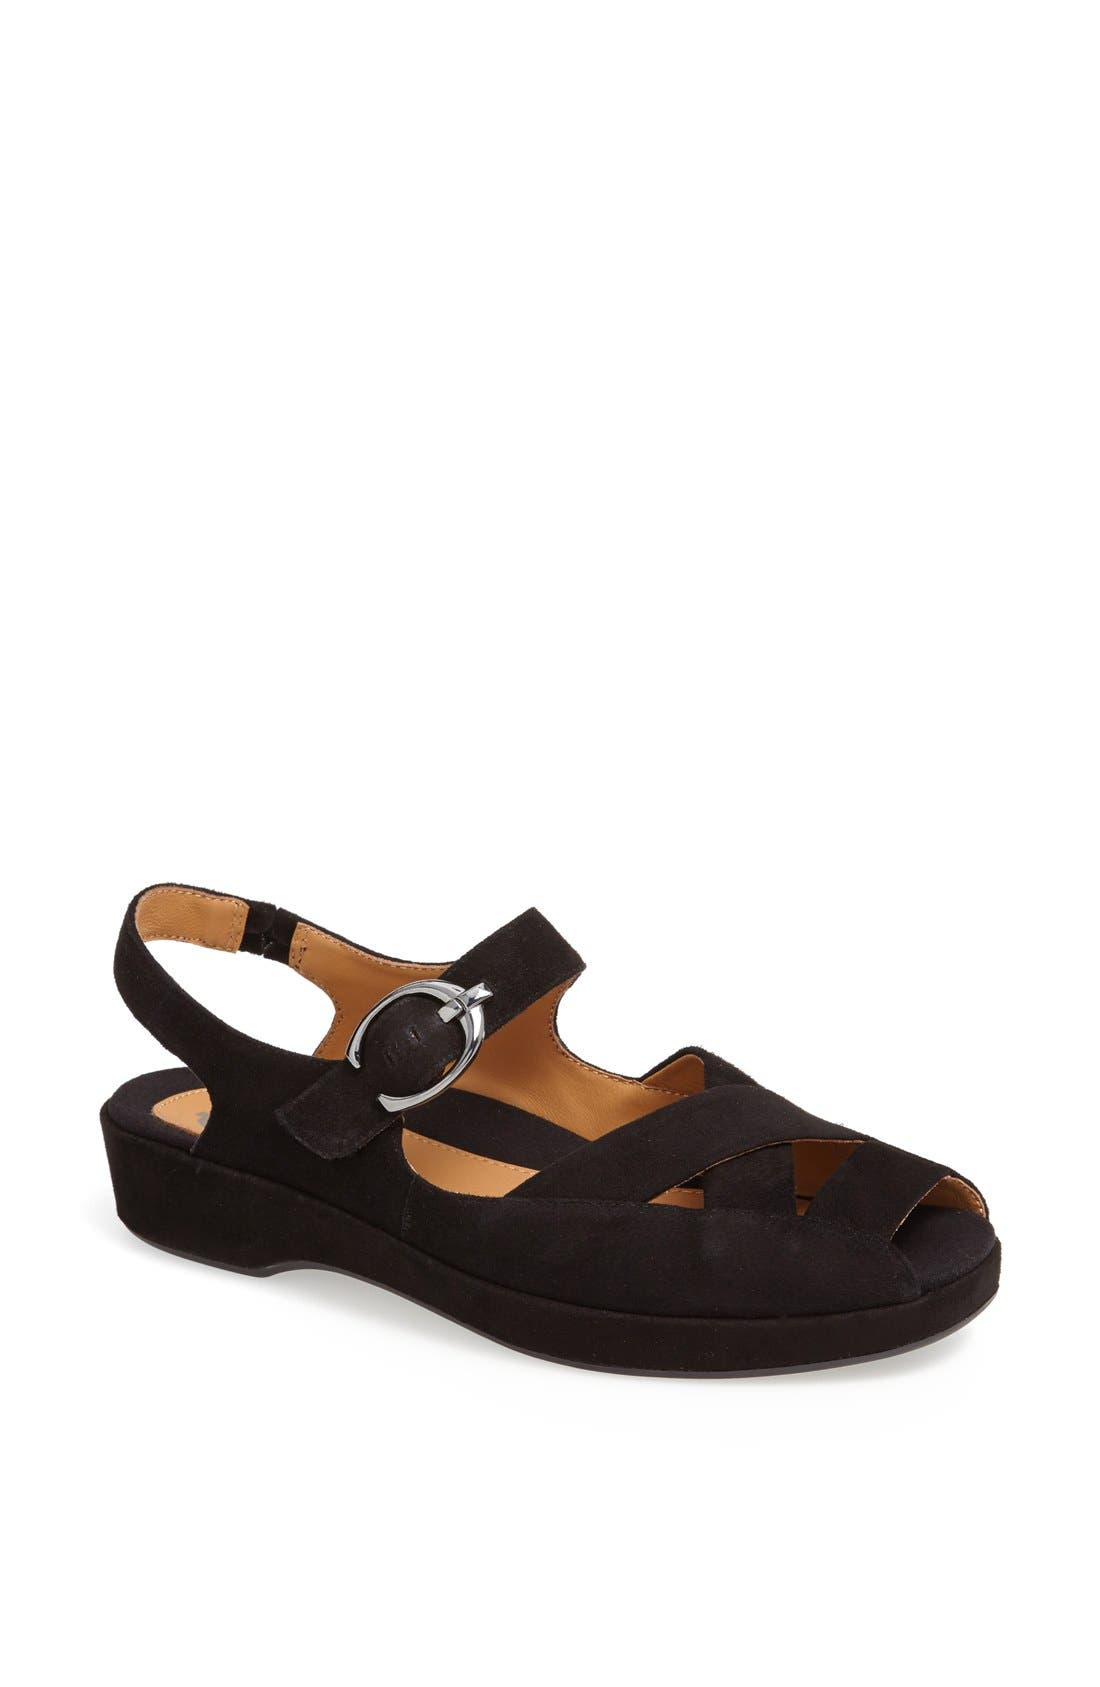 Alternate Image 1 Selected - Earthies® 'Malina' Sandal